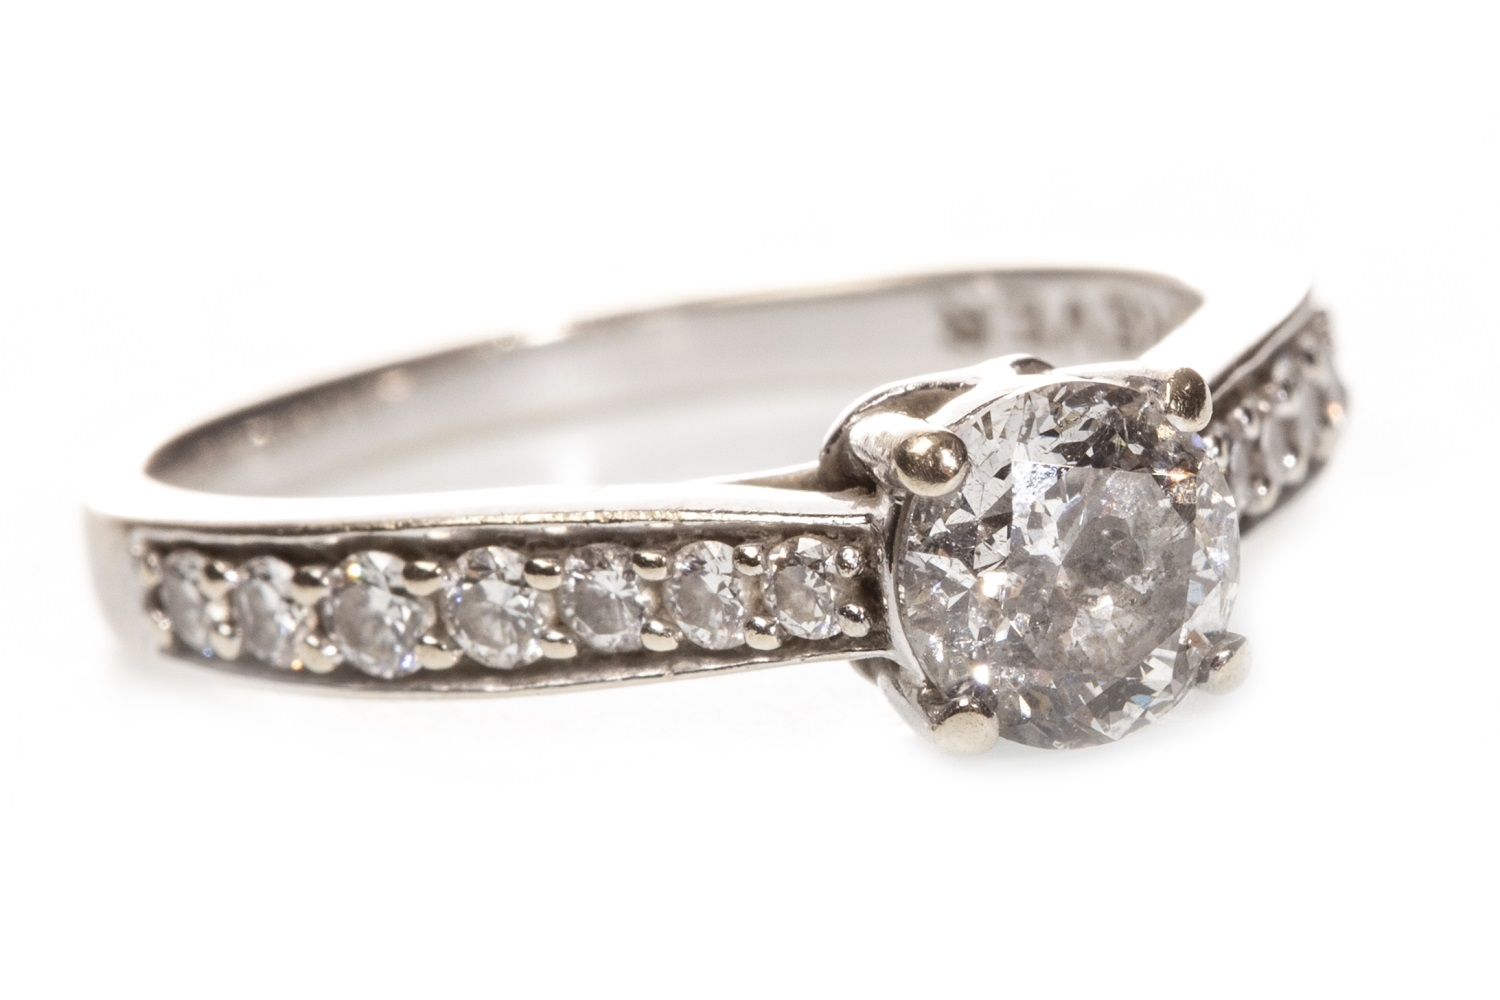 Lot 39 - A DIAMOND SOLITAIRE RING